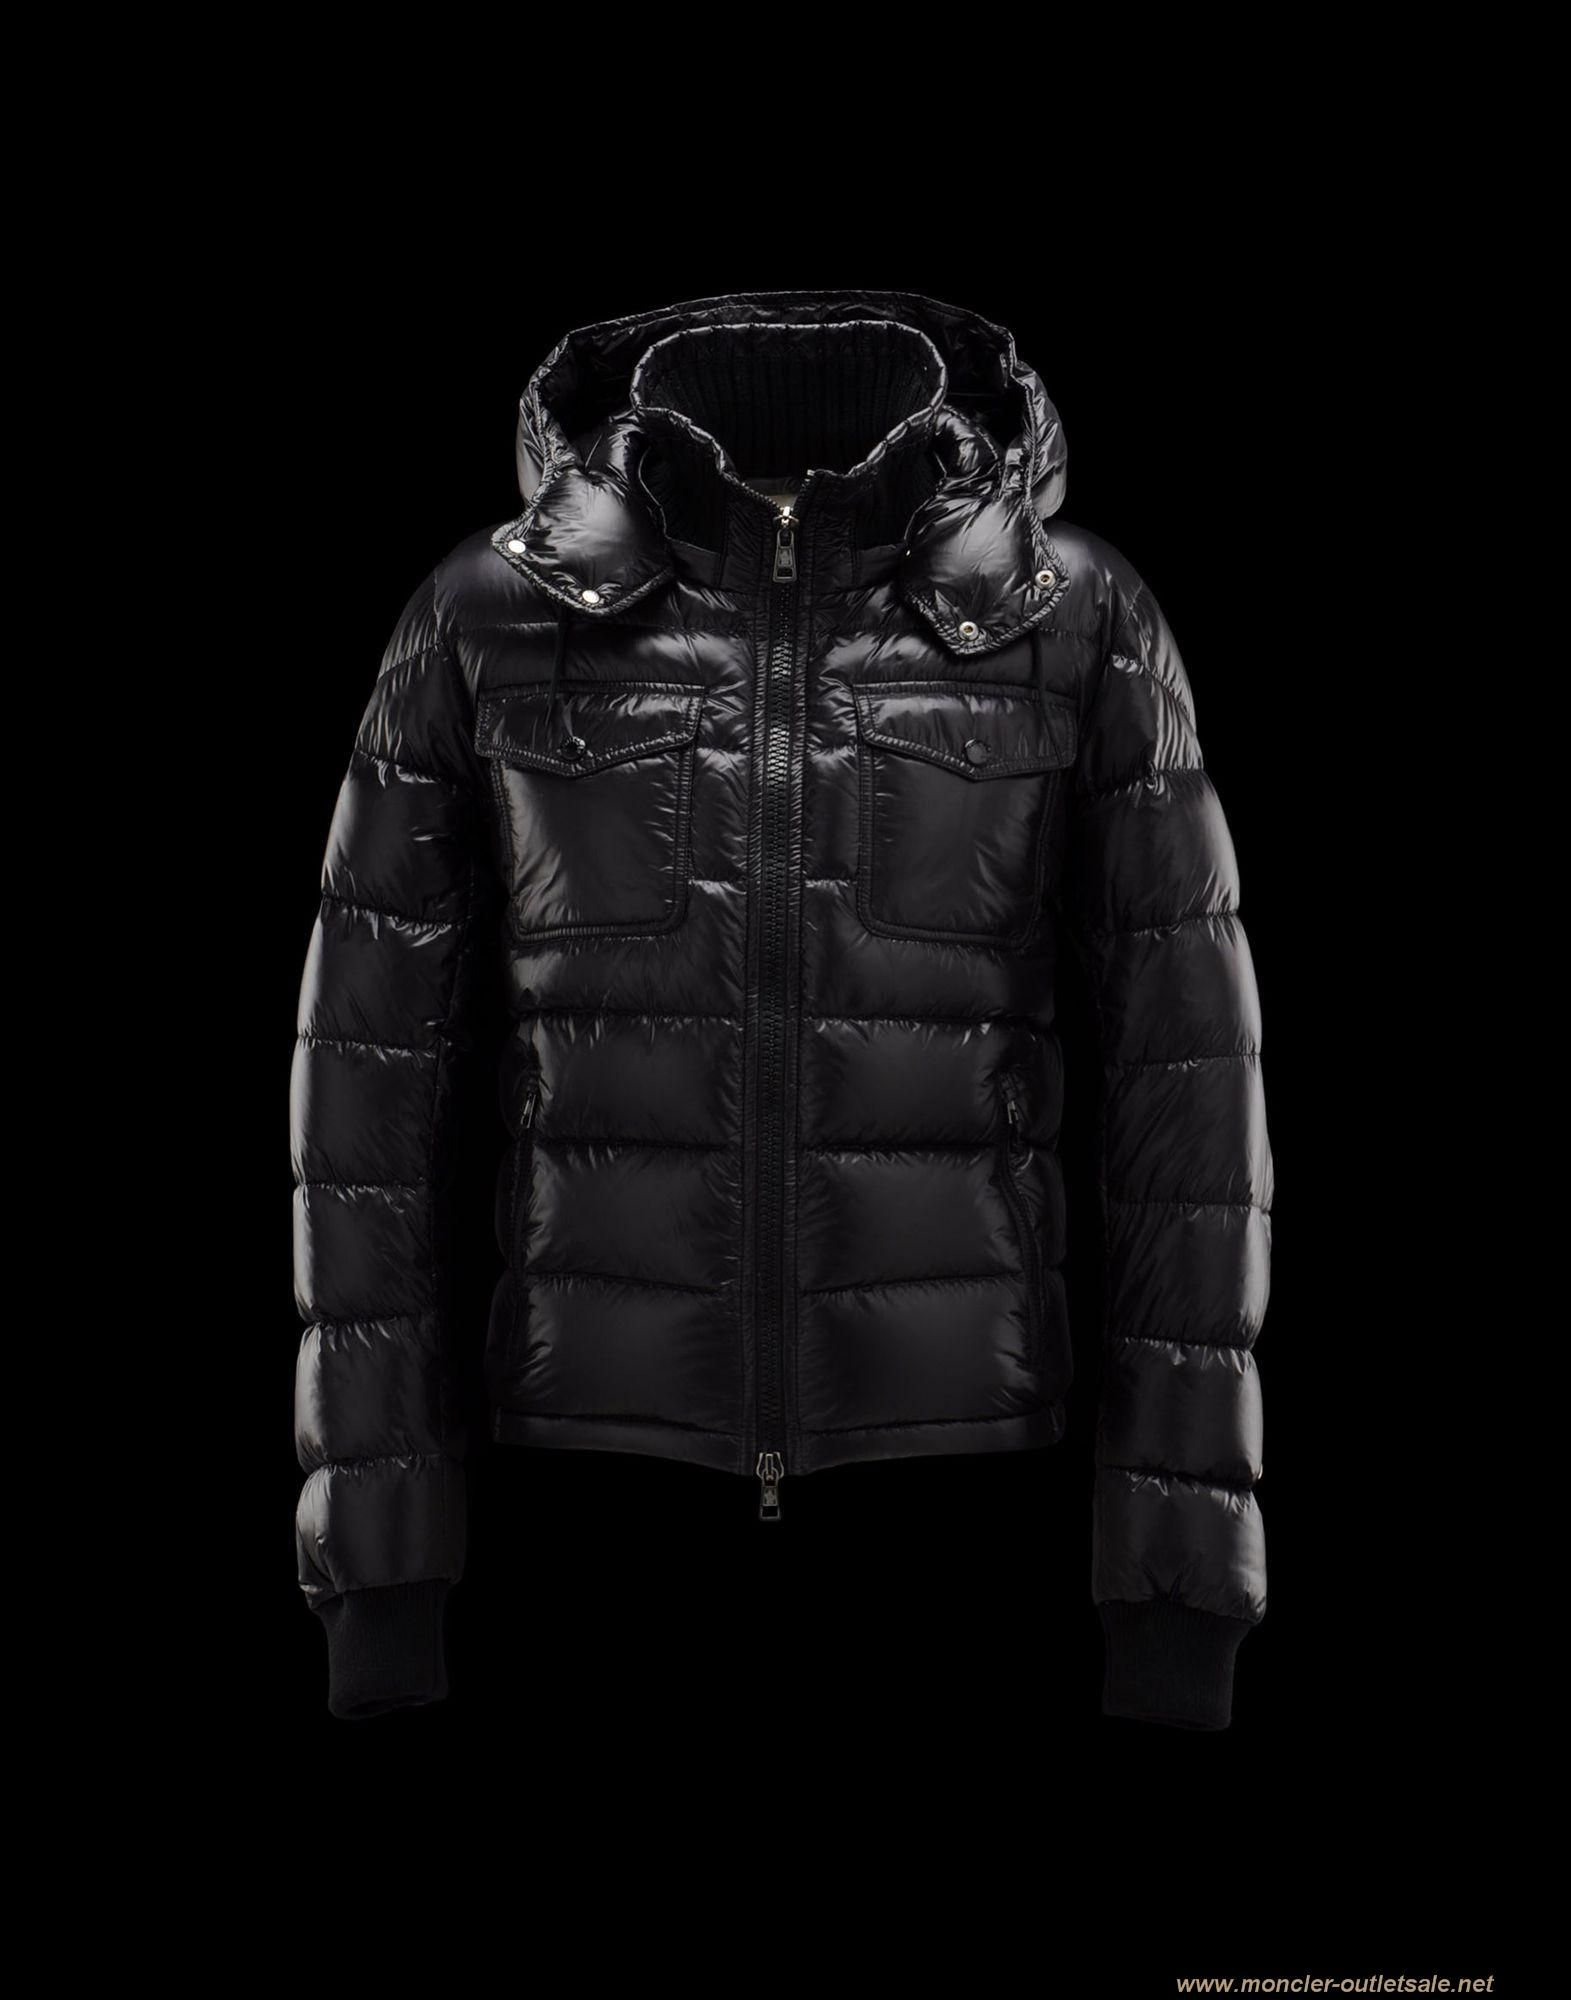 Pin on Moncler Outlet Sale